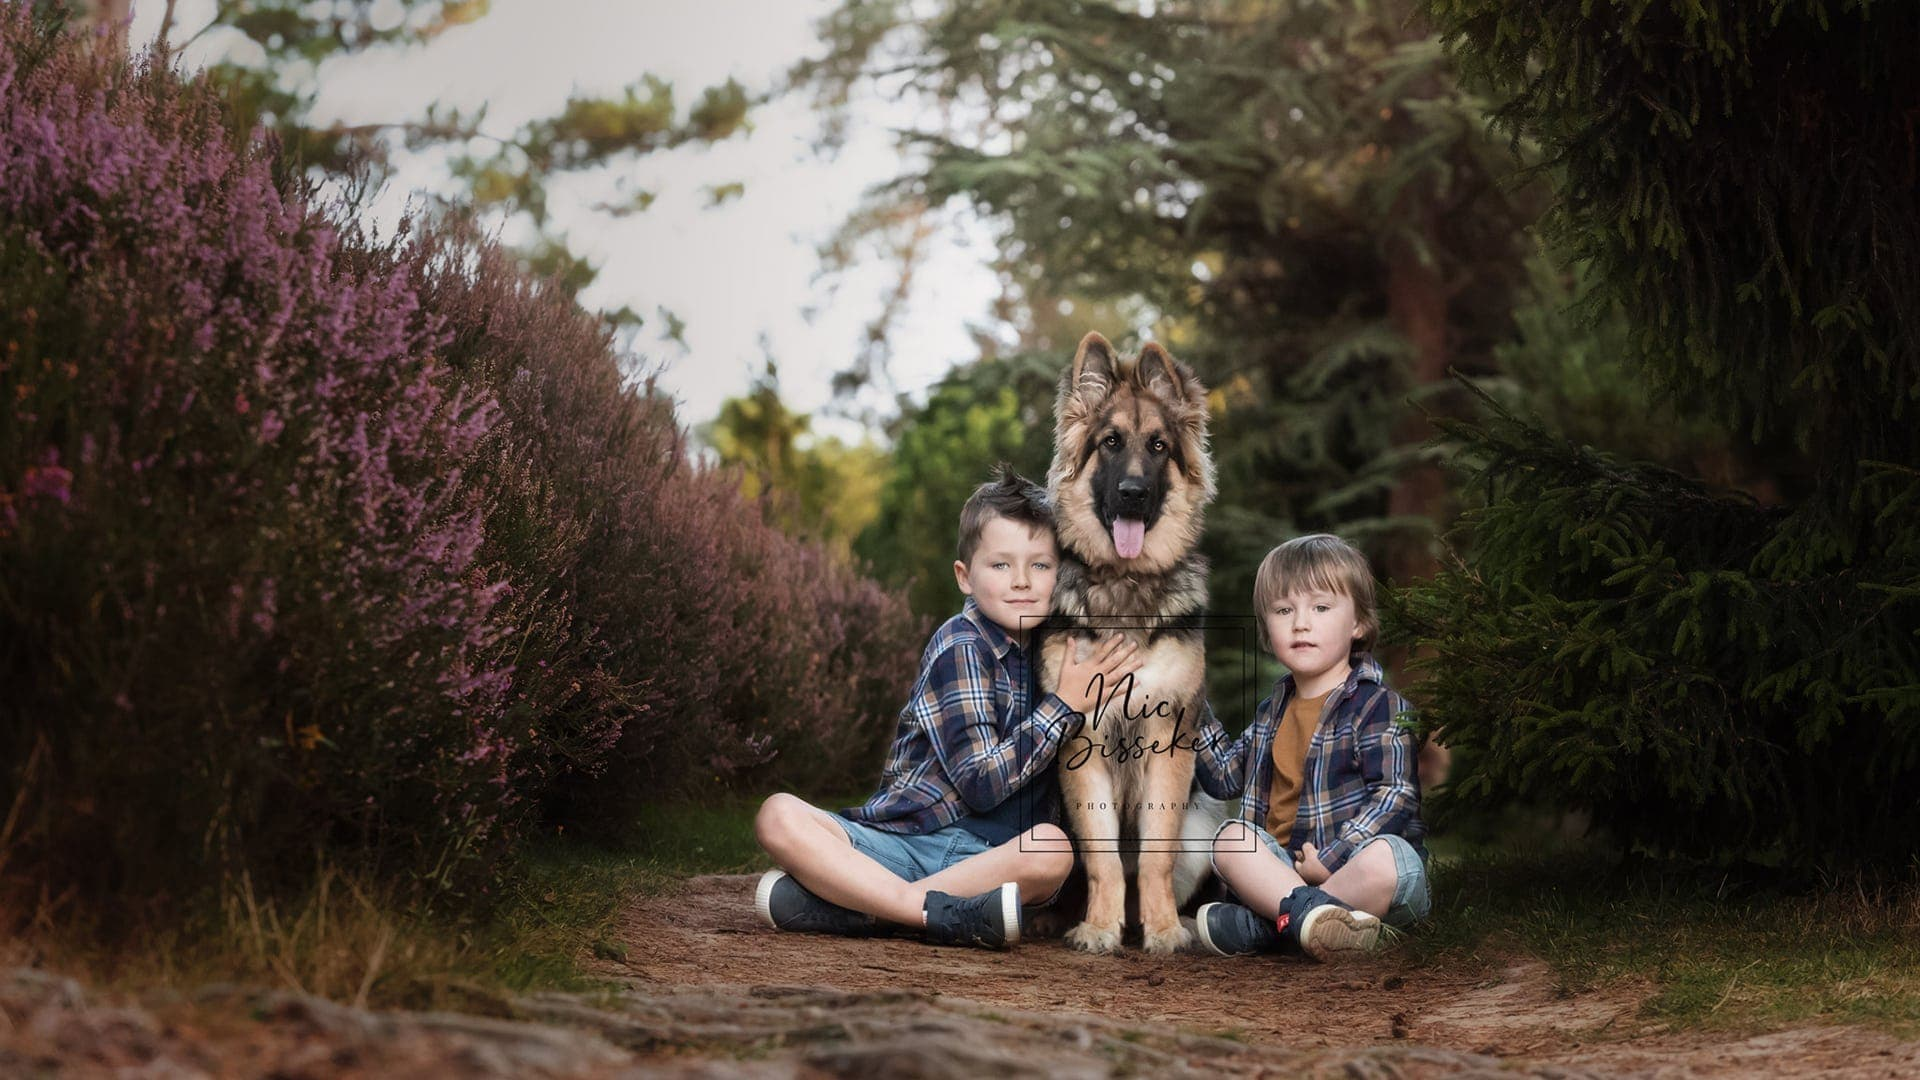 Nic Bisseker Photography family photoshoot WEst sussex